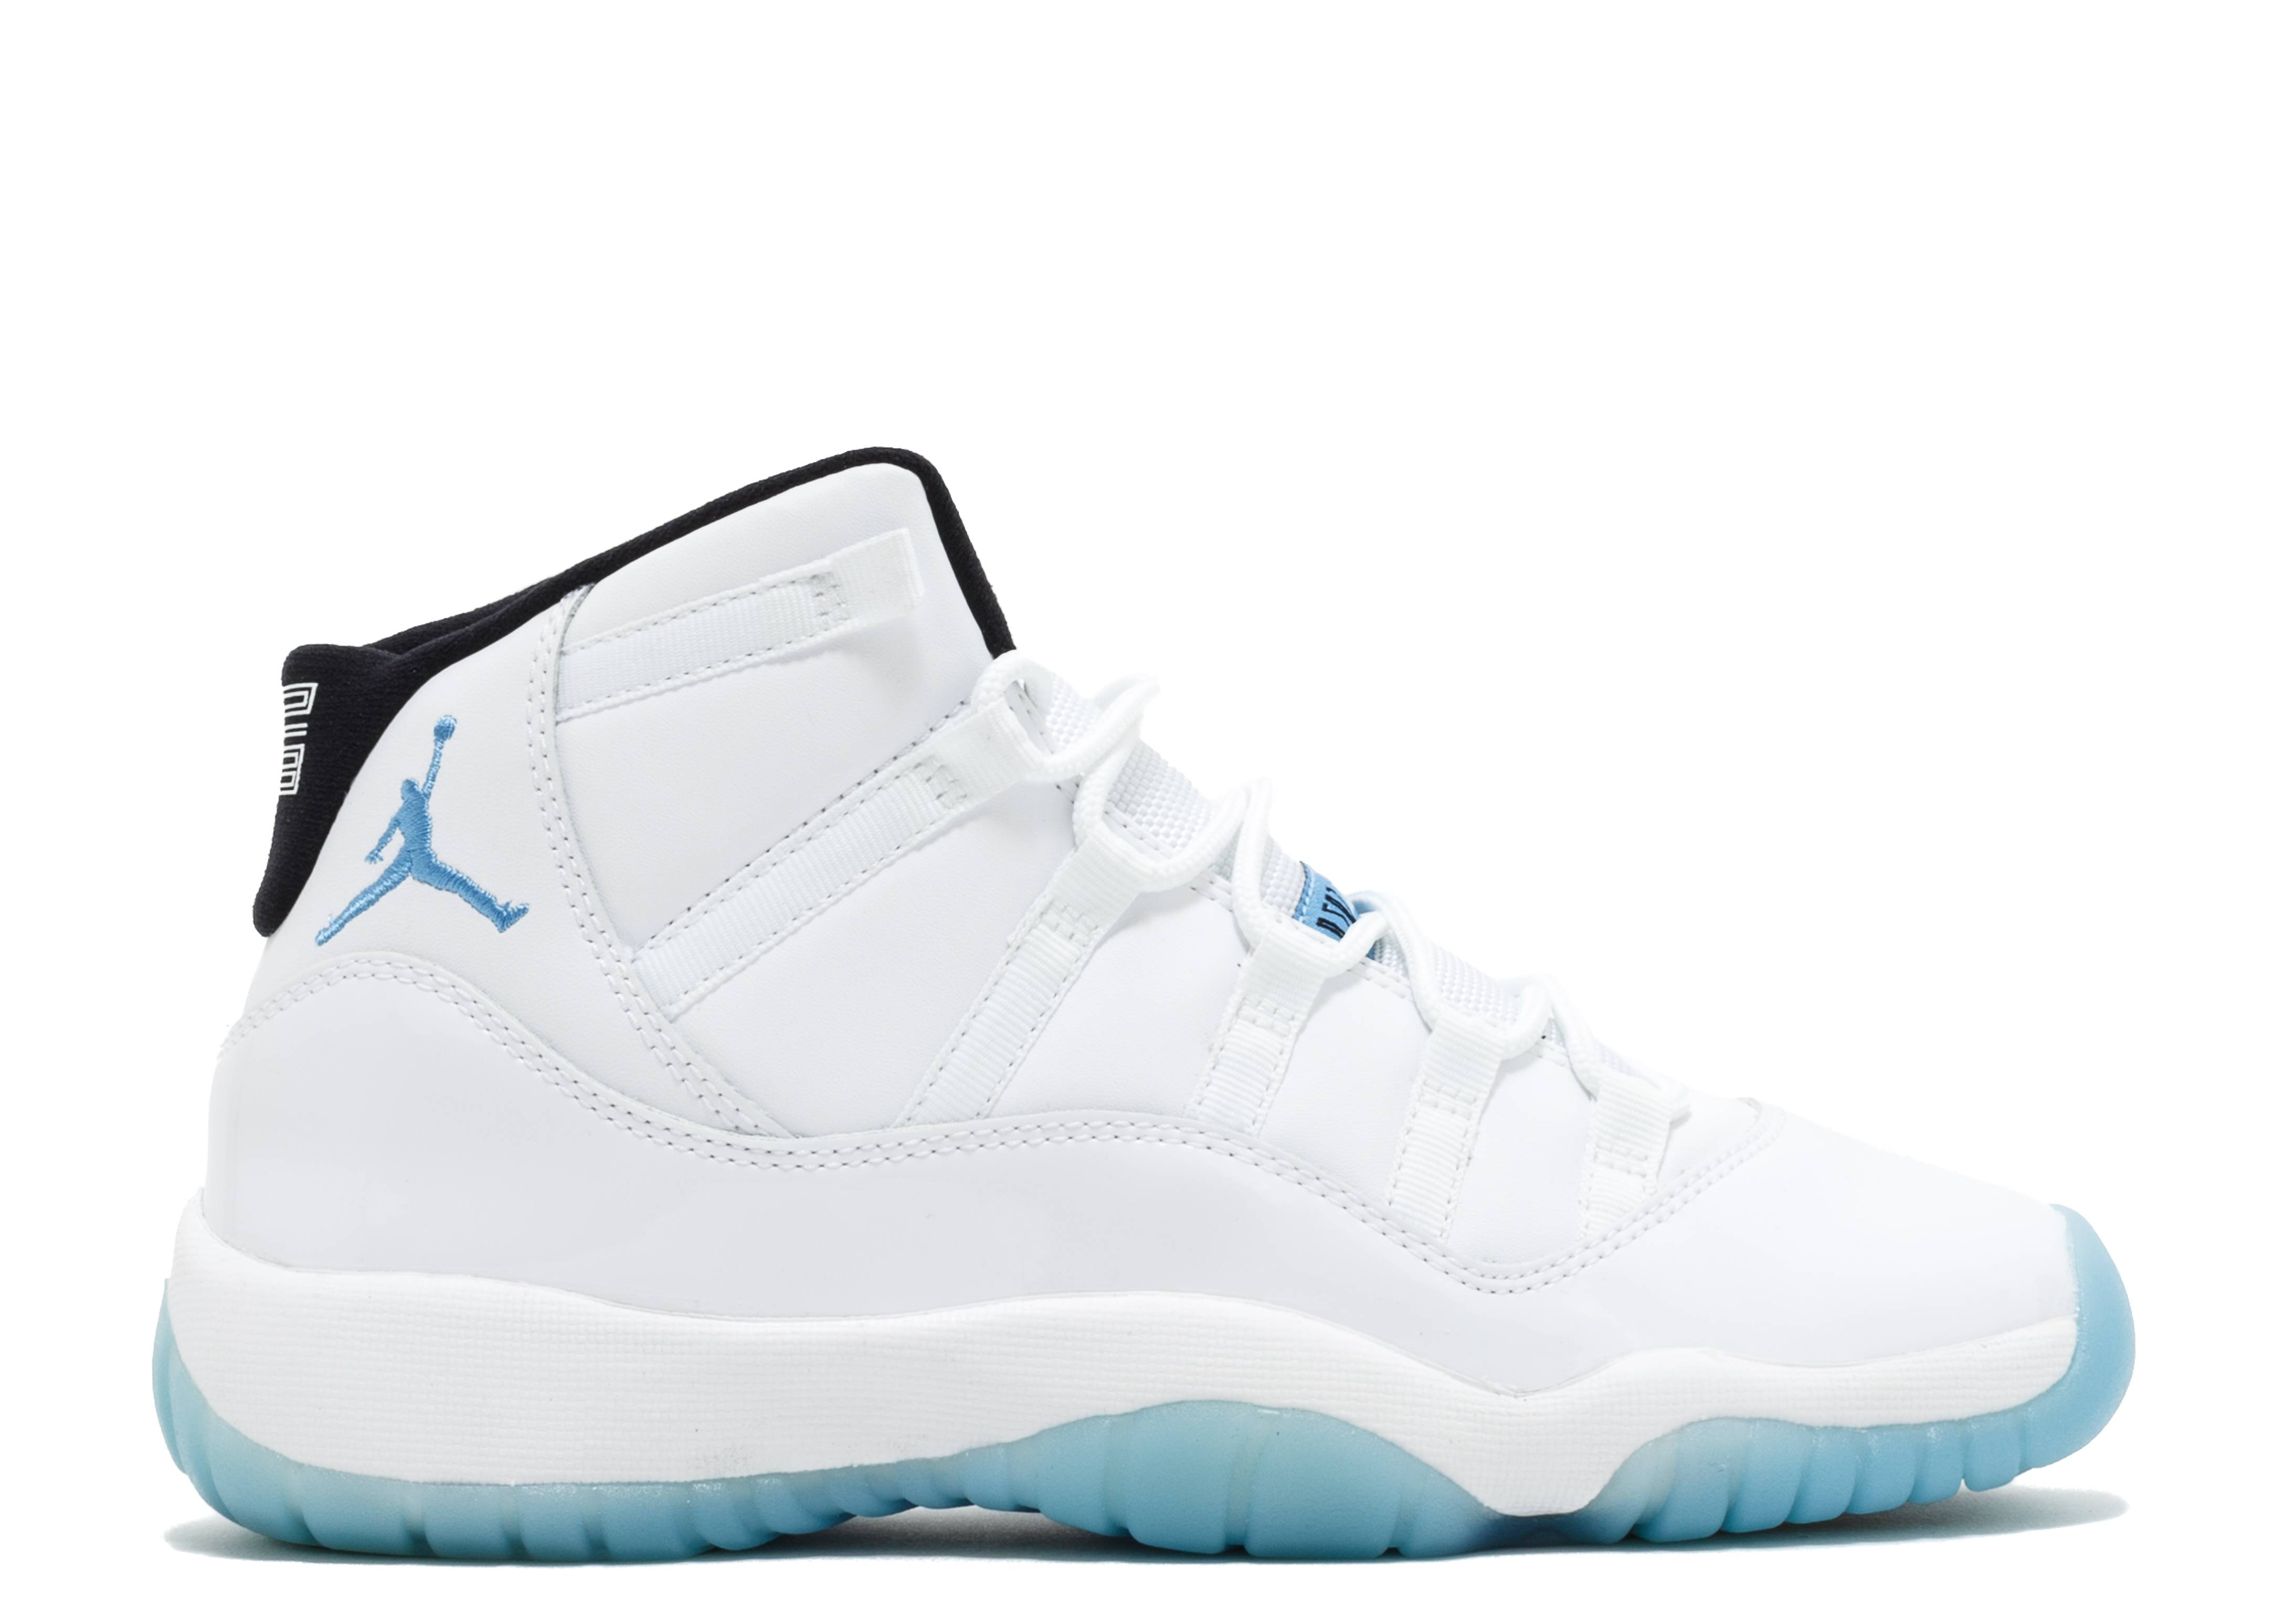 air jordan retro 11 shoes